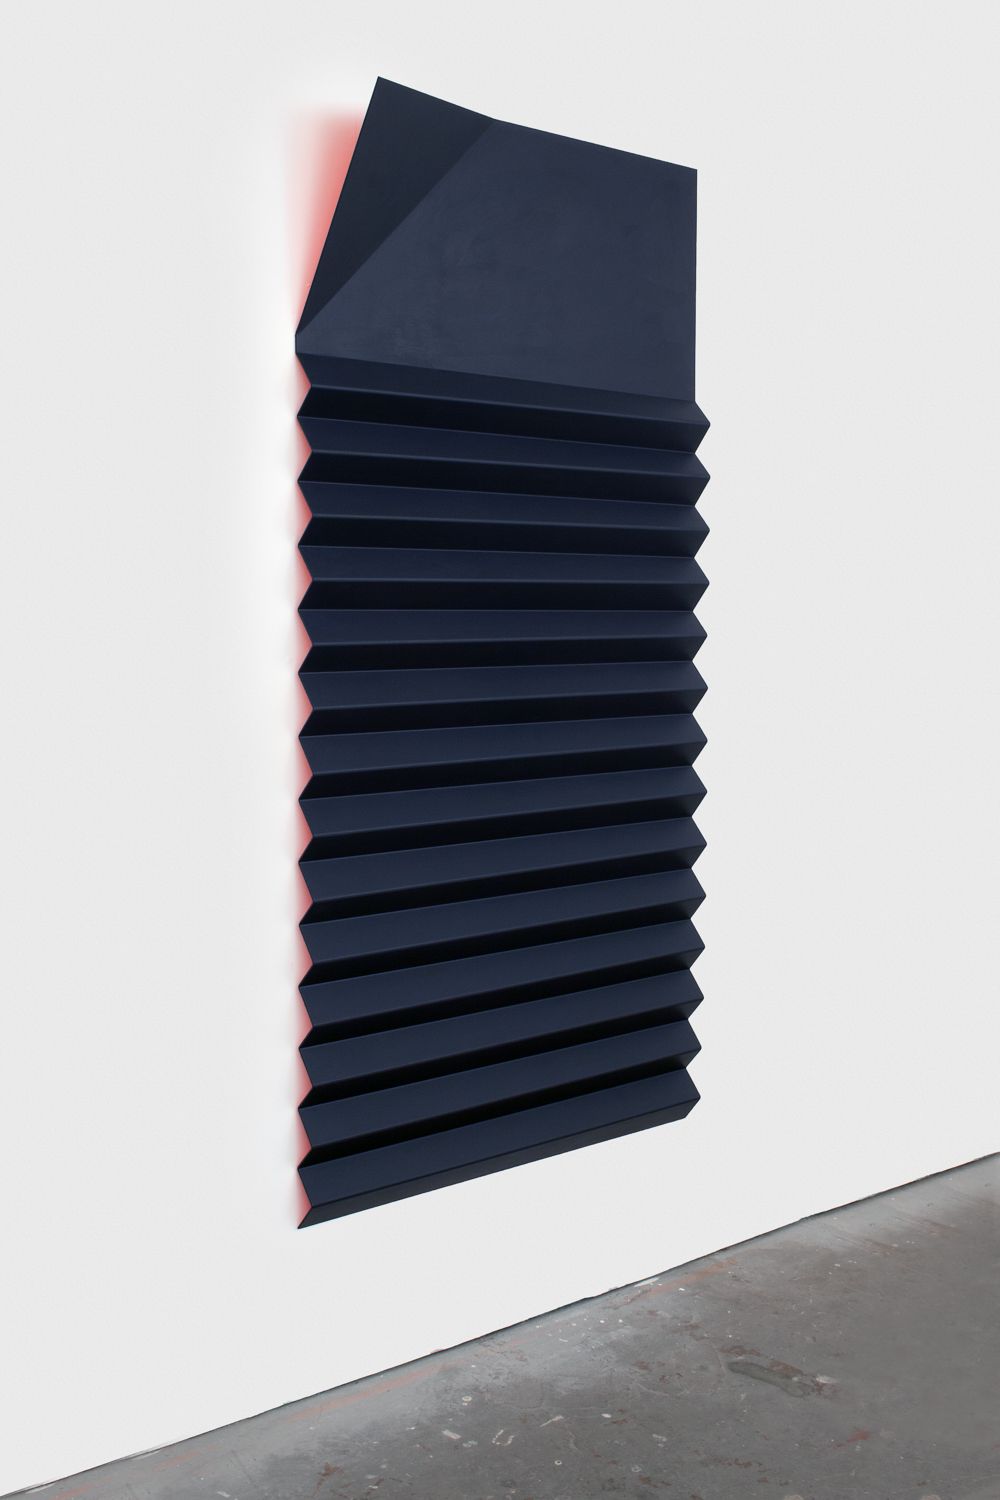 Lisa Williamson  Red and Blue Bed Shade  2012 Acrylic on powder-coated aluminum 75h x 36w x 8d in LW104